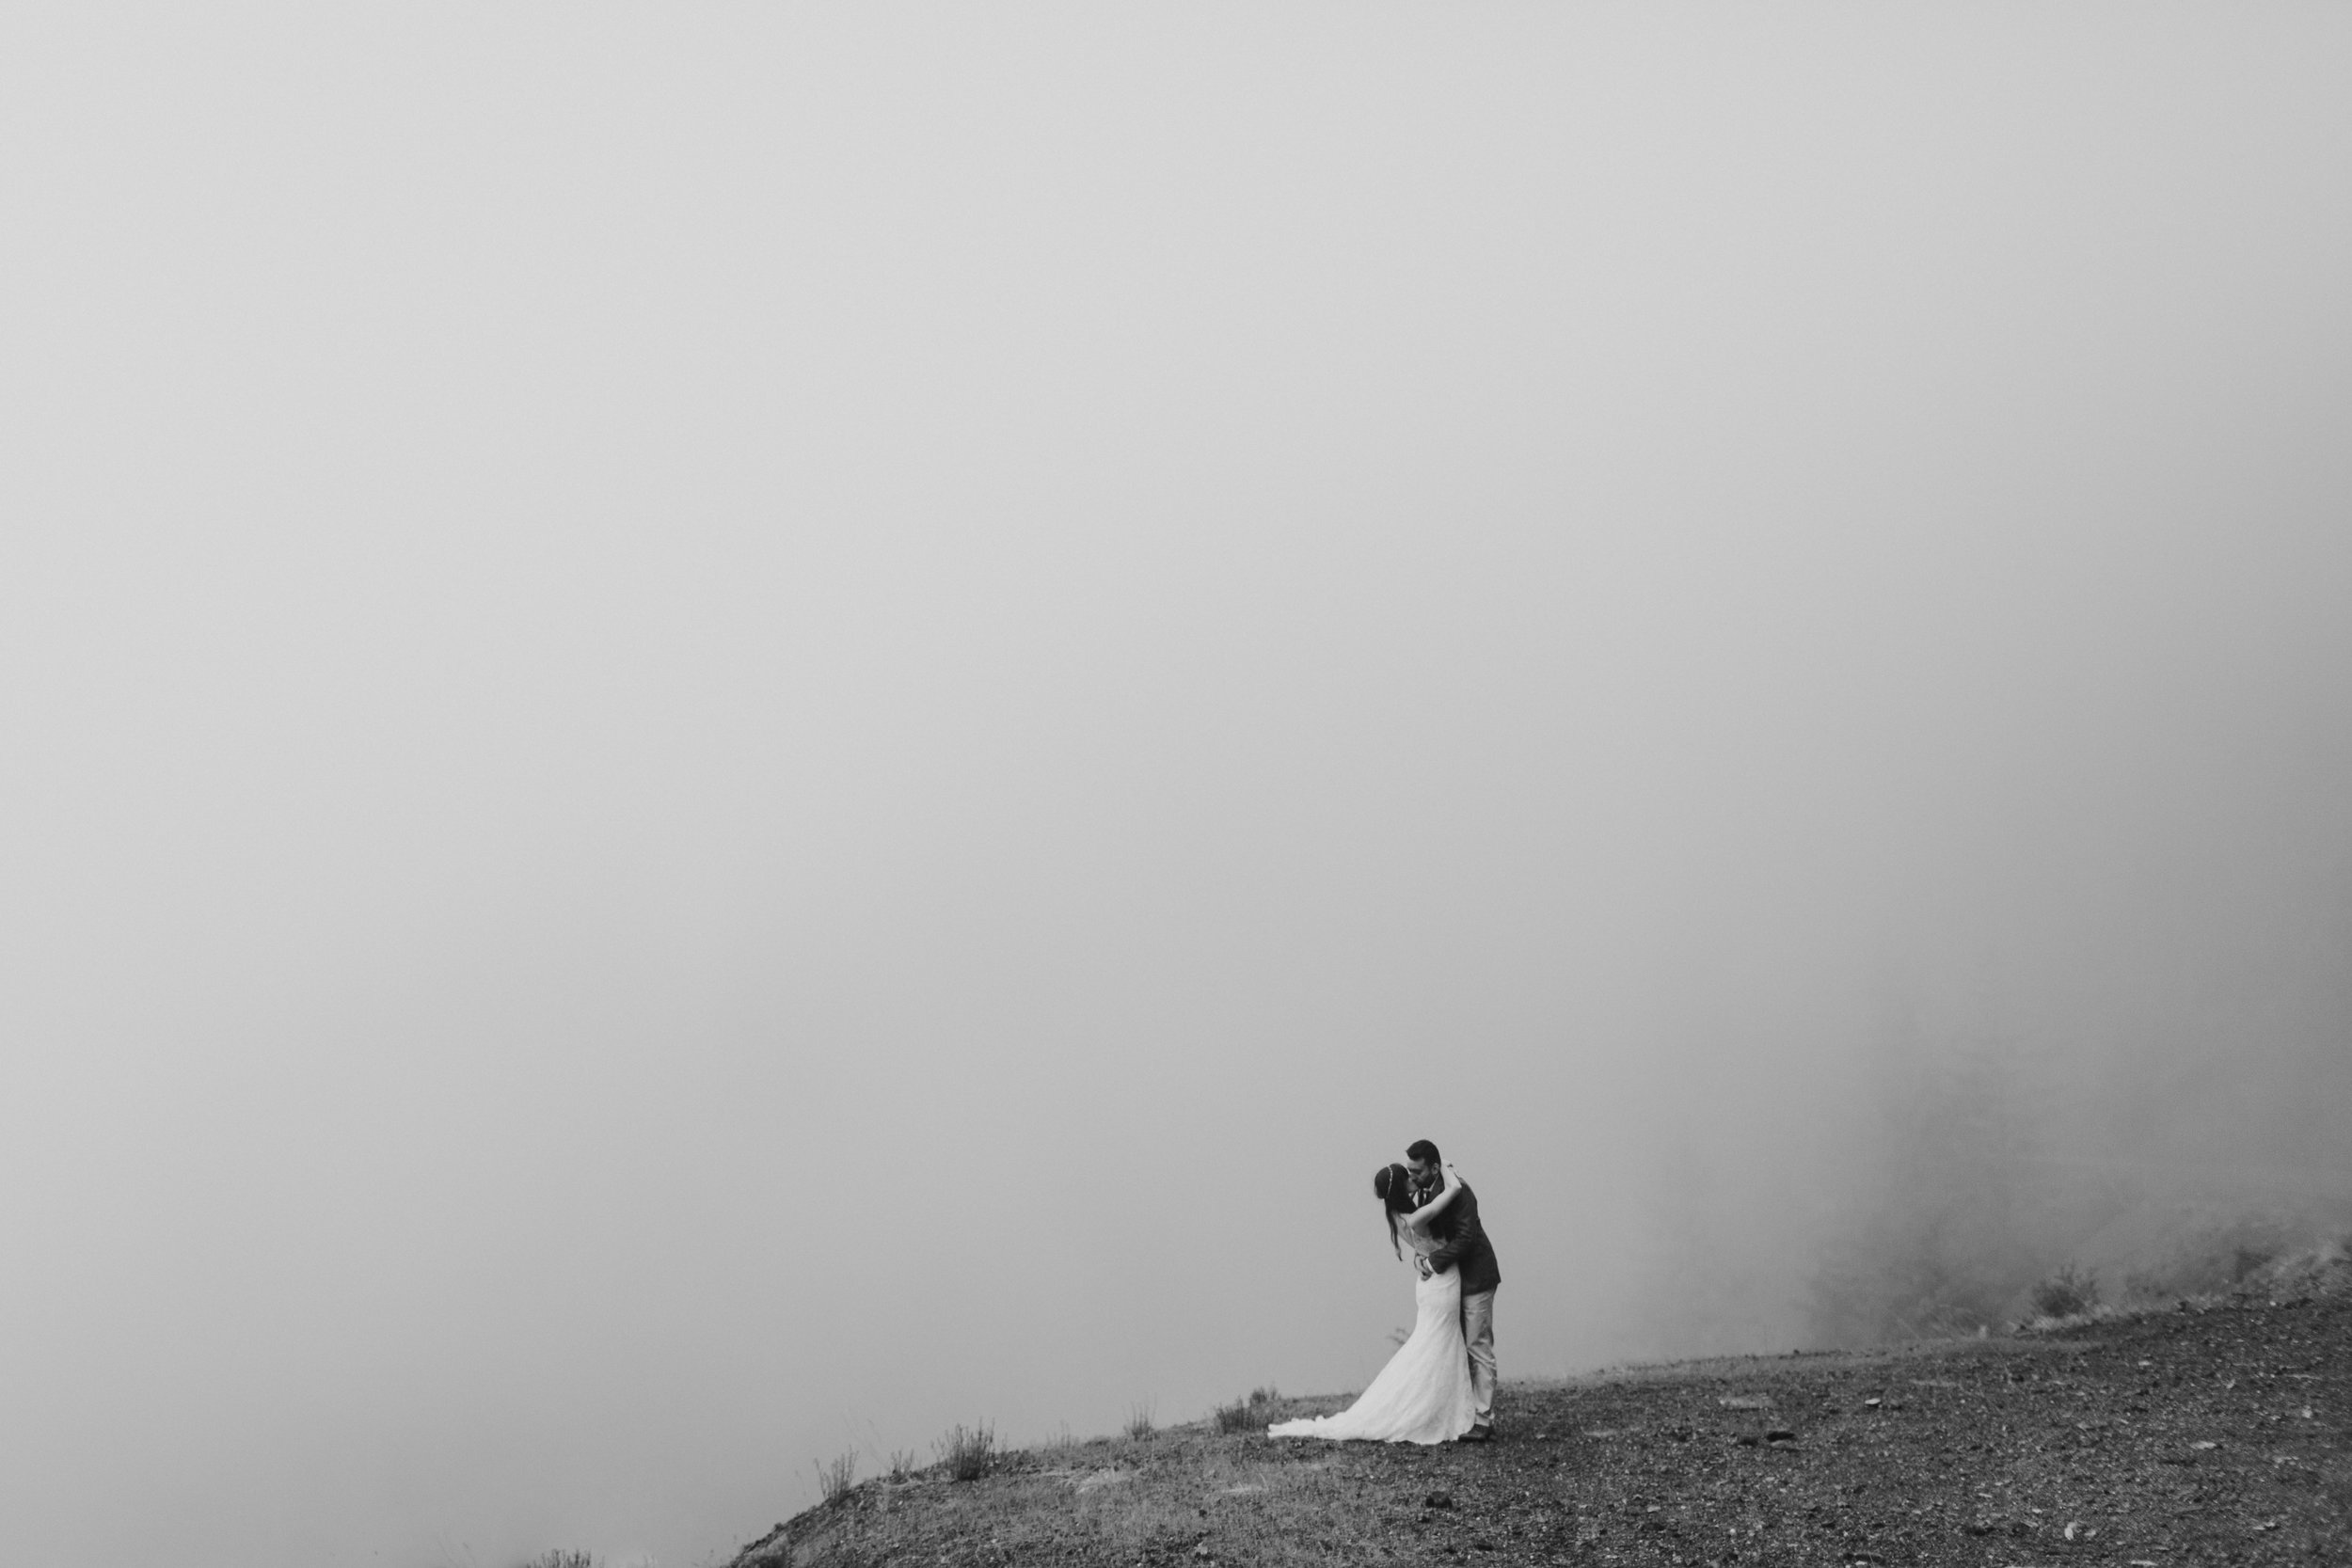 PNW-elopement-wedding-engagement-olympic national park-port angeles-hurricane ridge-lake crescent-kayla dawn photography- photographer-photography-kayladawnphoto-217.jpg